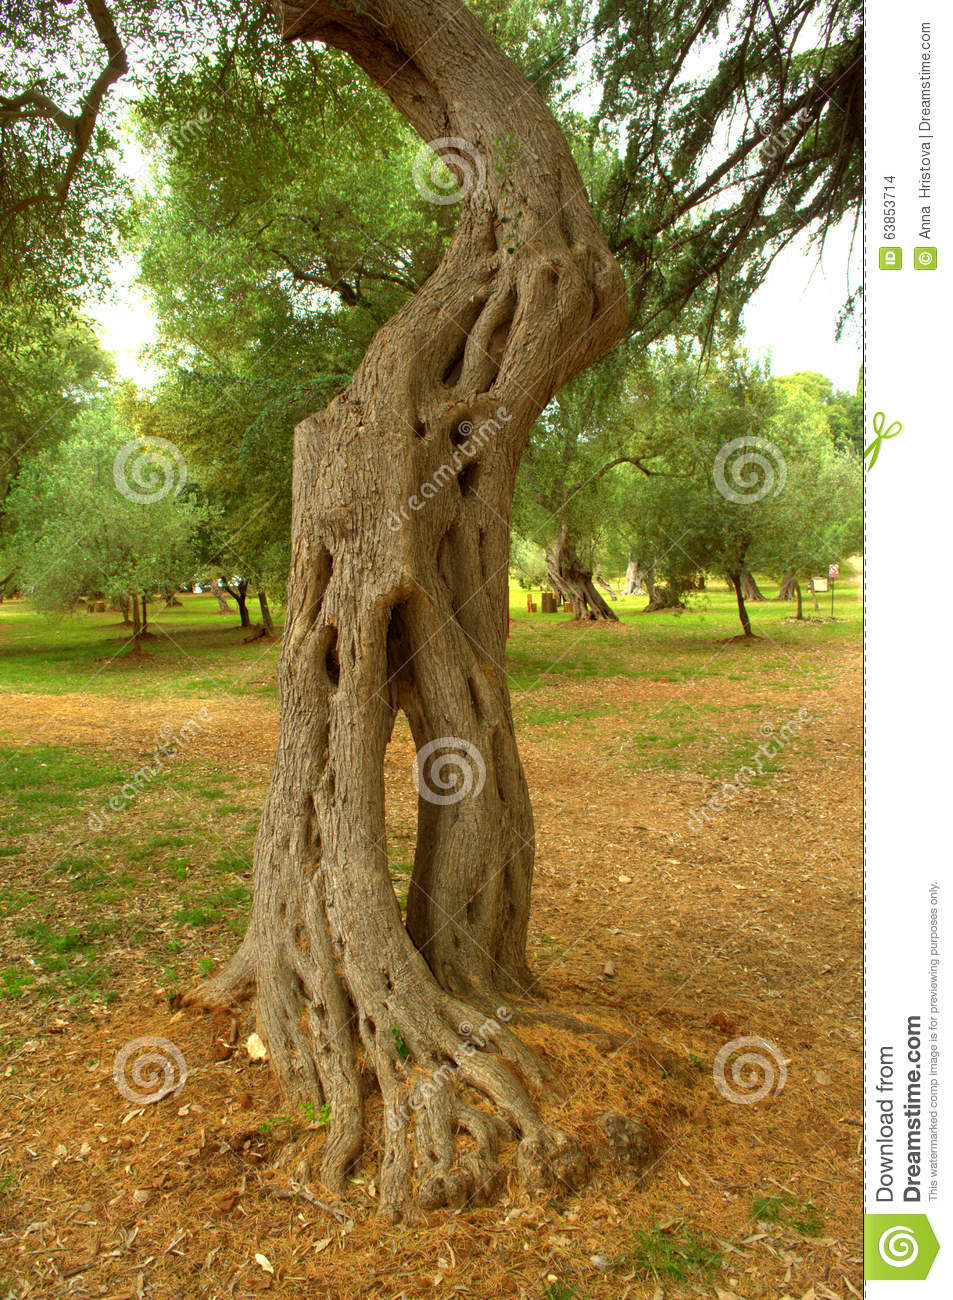 Arbre d 39 eucalyptus pittoresque photo stock image 63853714 for Jardin pittoresque